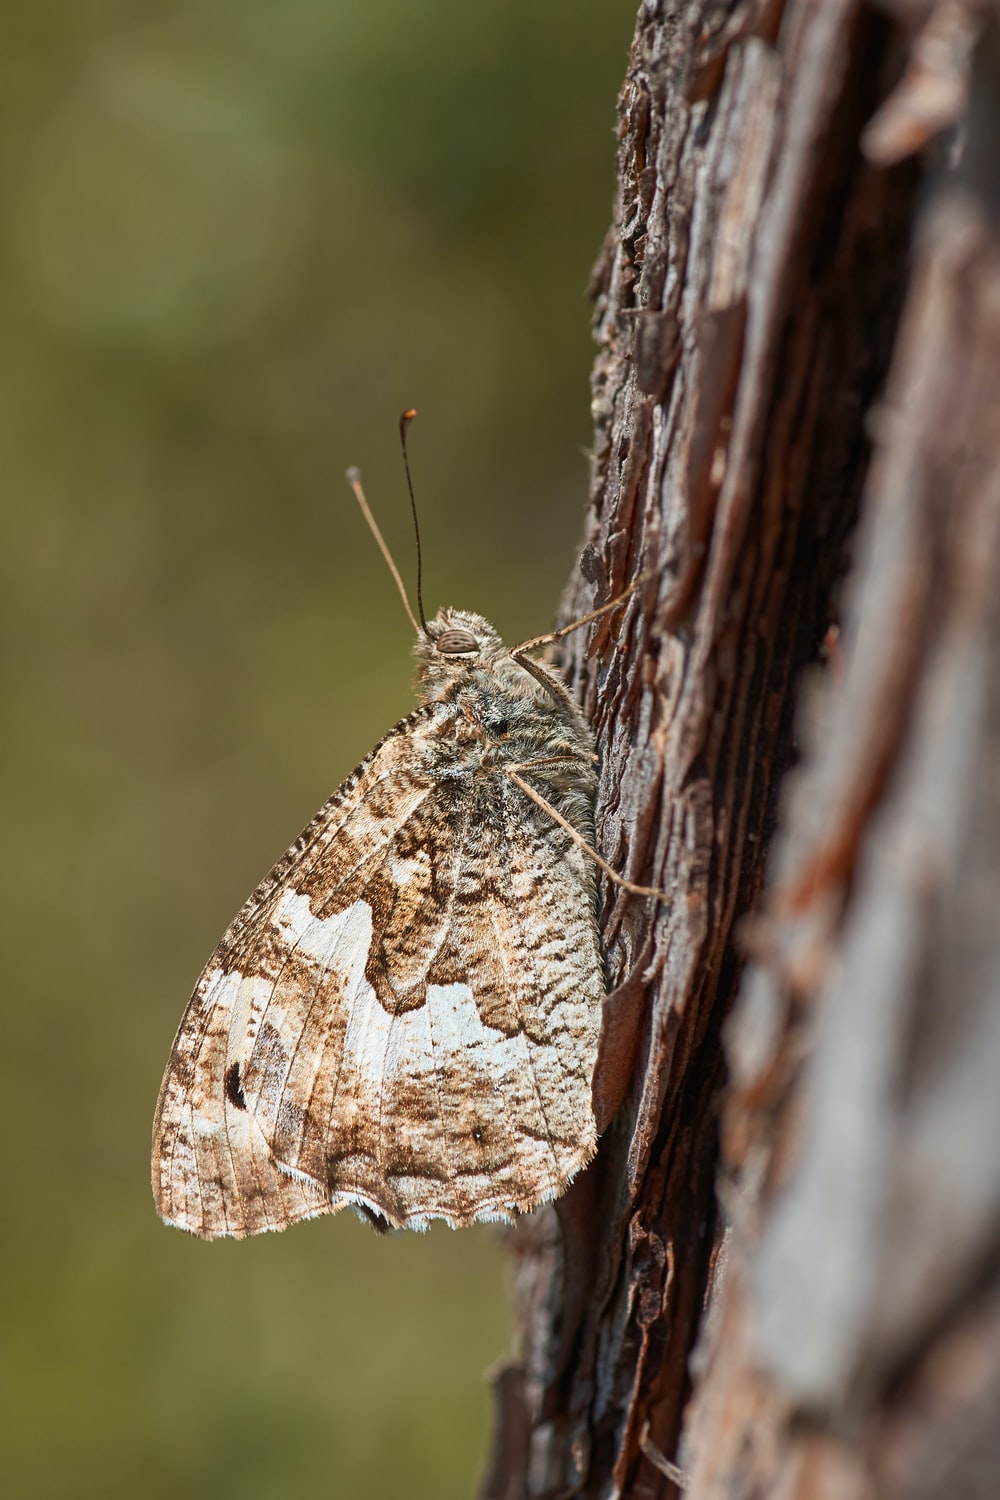 brown and white butterfly perched on brown wood